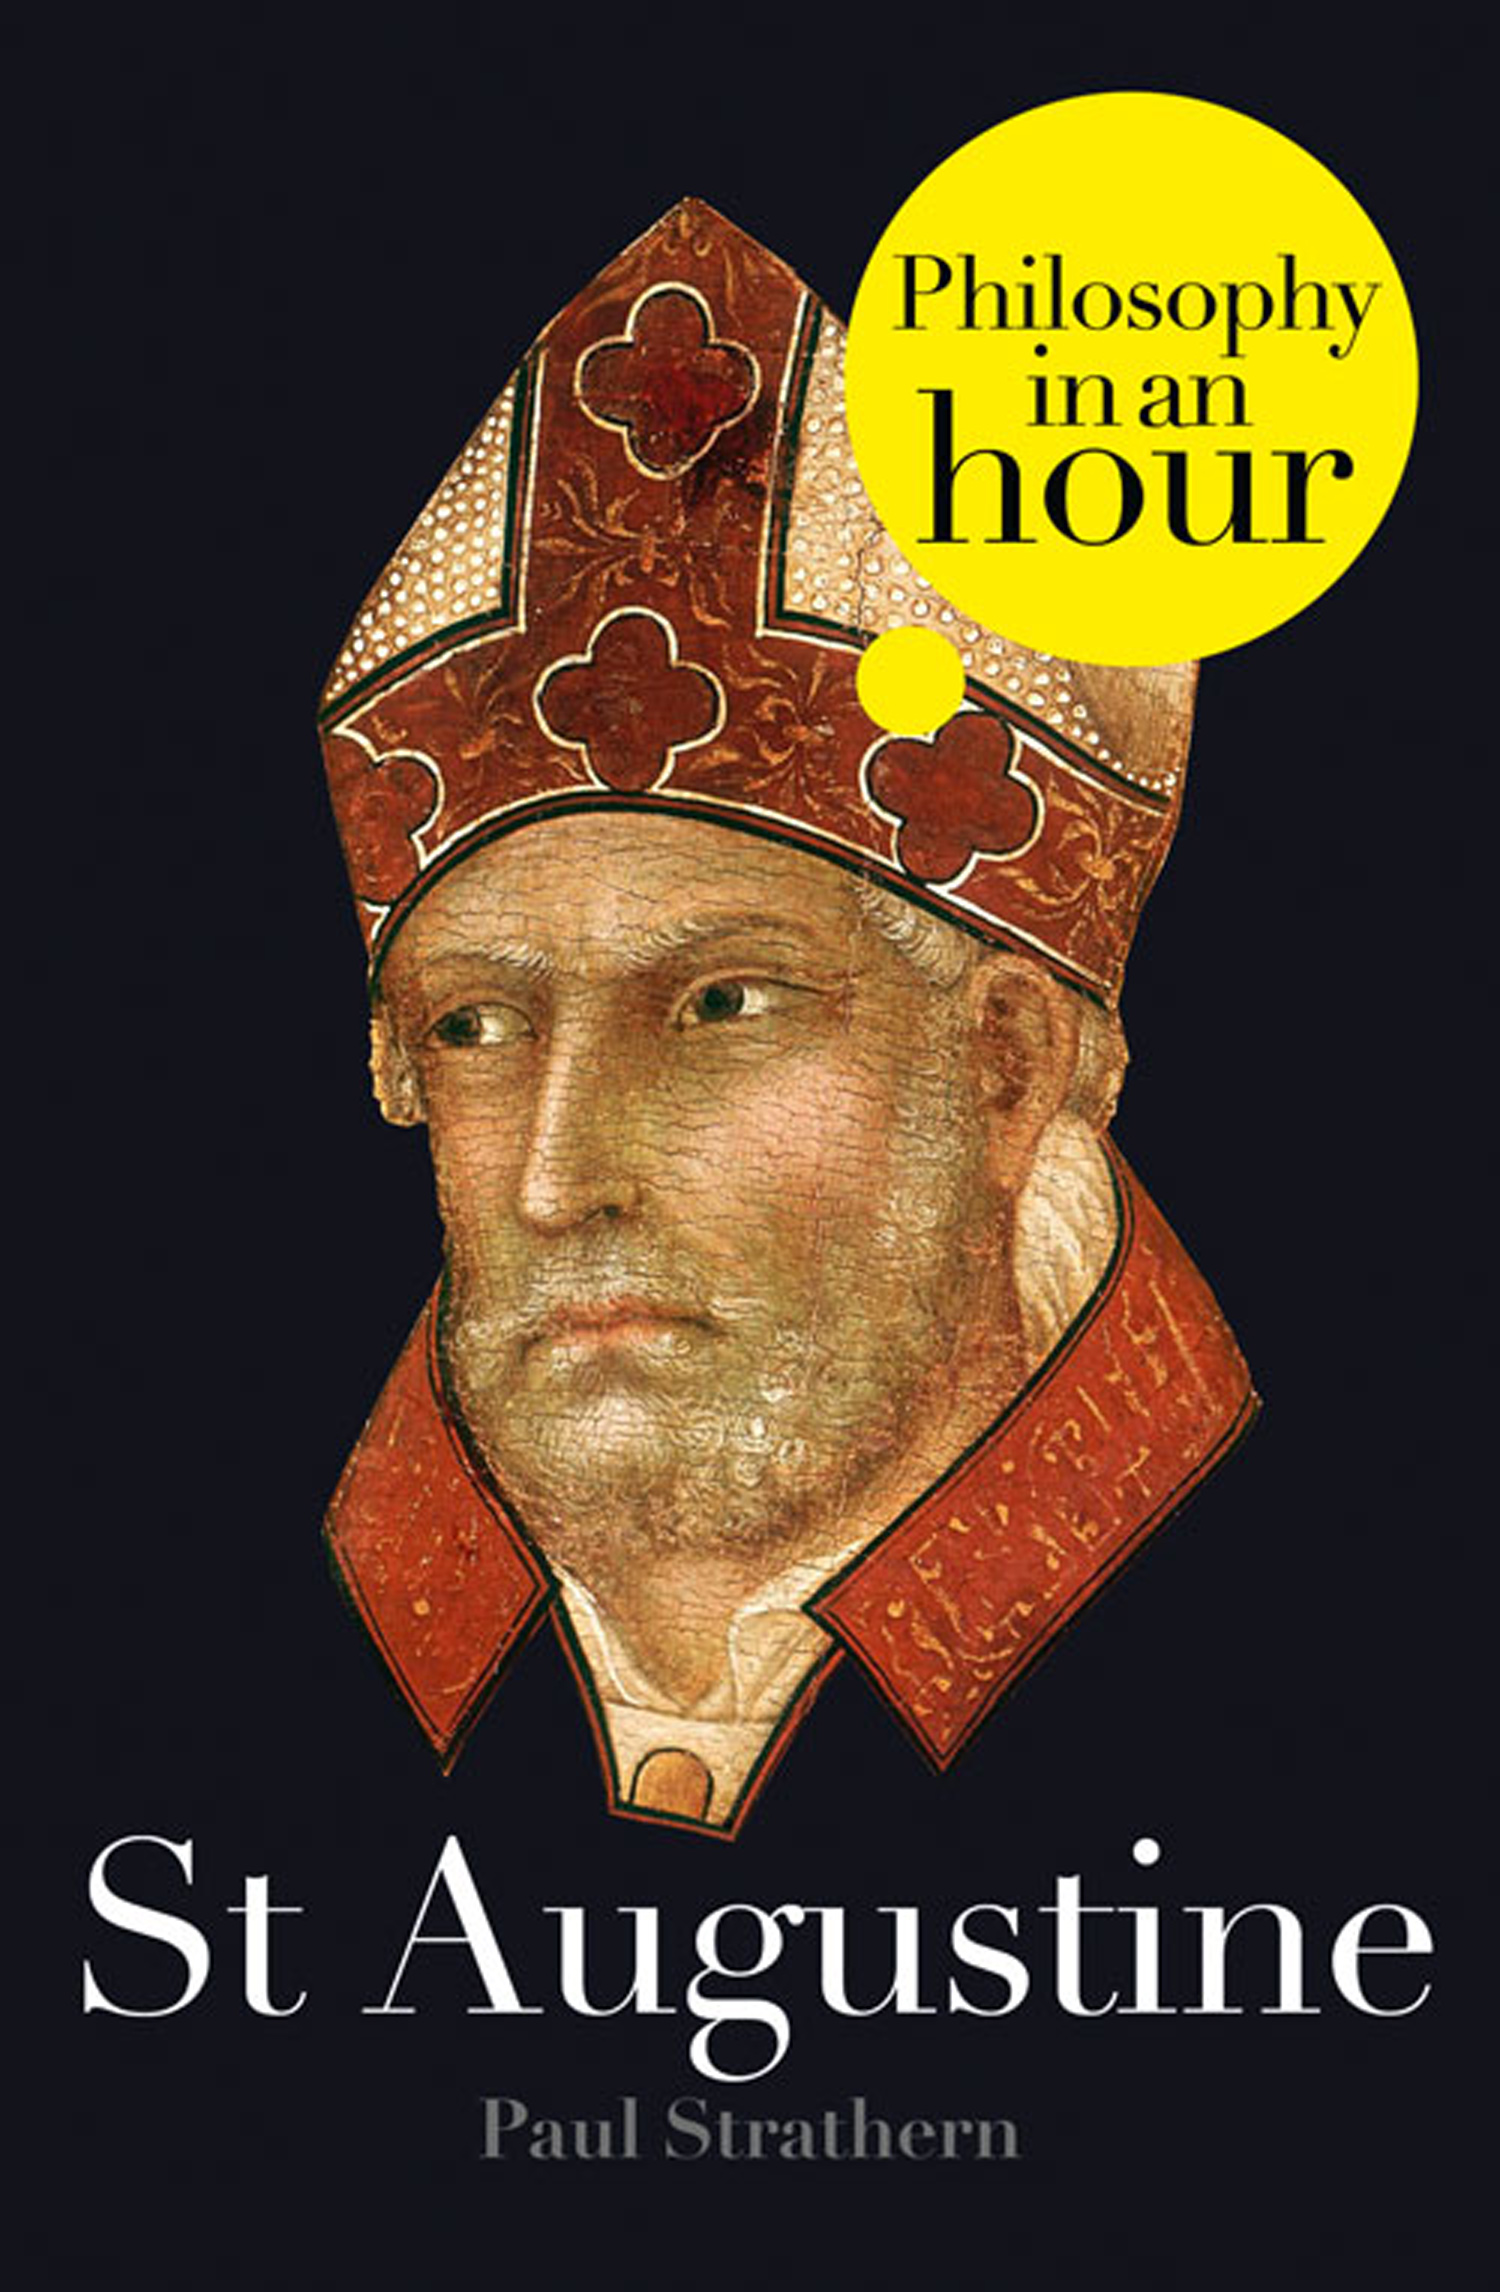 life of st augustine psychophilosophical foundations Official website of the order of saint augustine the rule and way of life of st augustine had two foundations the first was the person of st augustine.